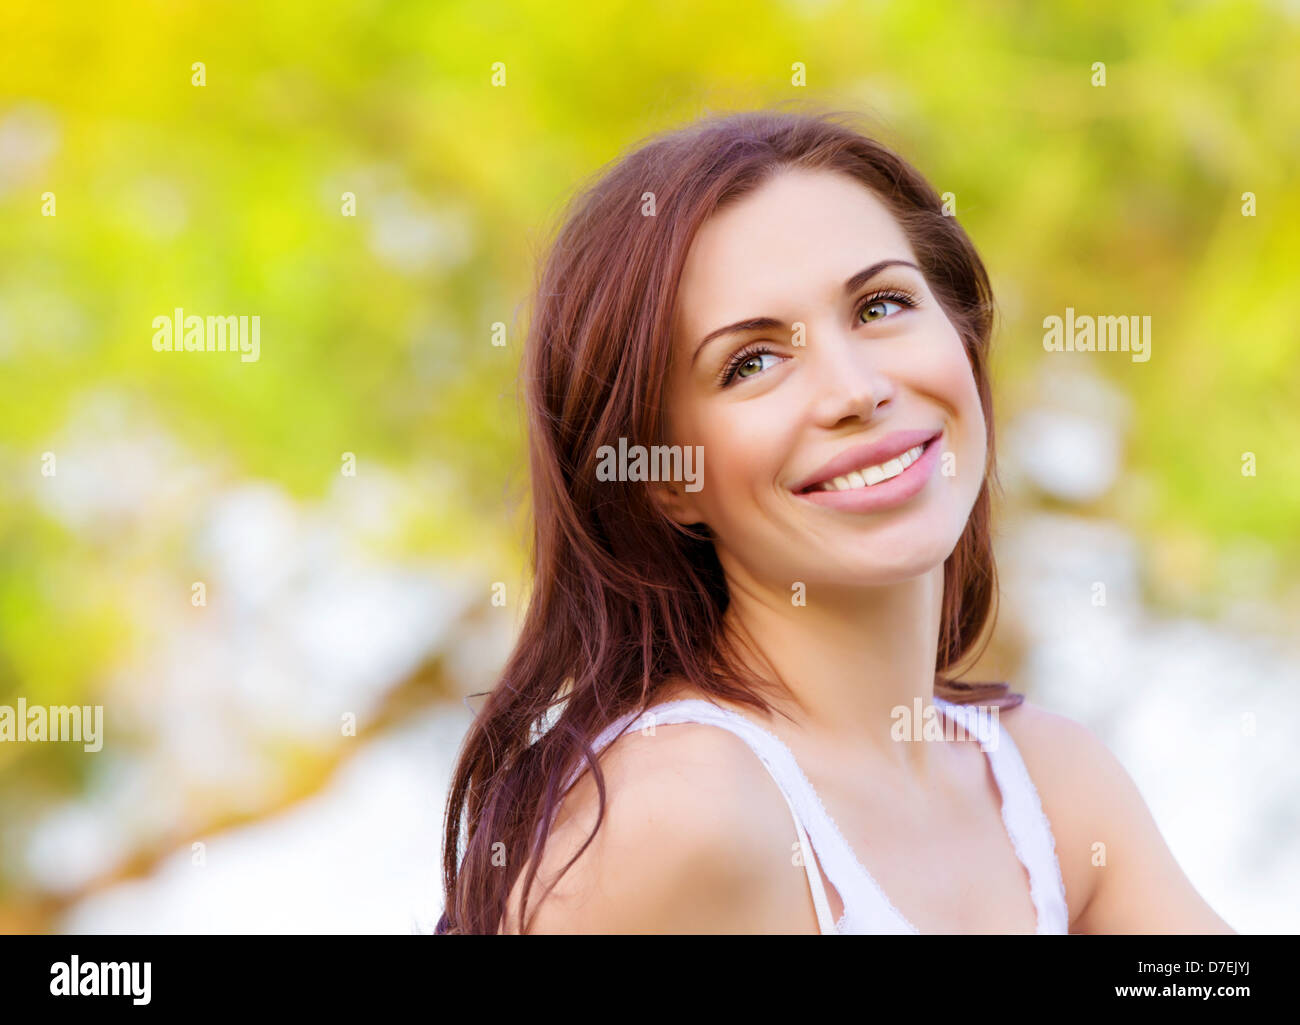 Closeup portrait of beautiful brunette woman in spring park, having fun outdoors, freedom and happiness concept - Stock Image